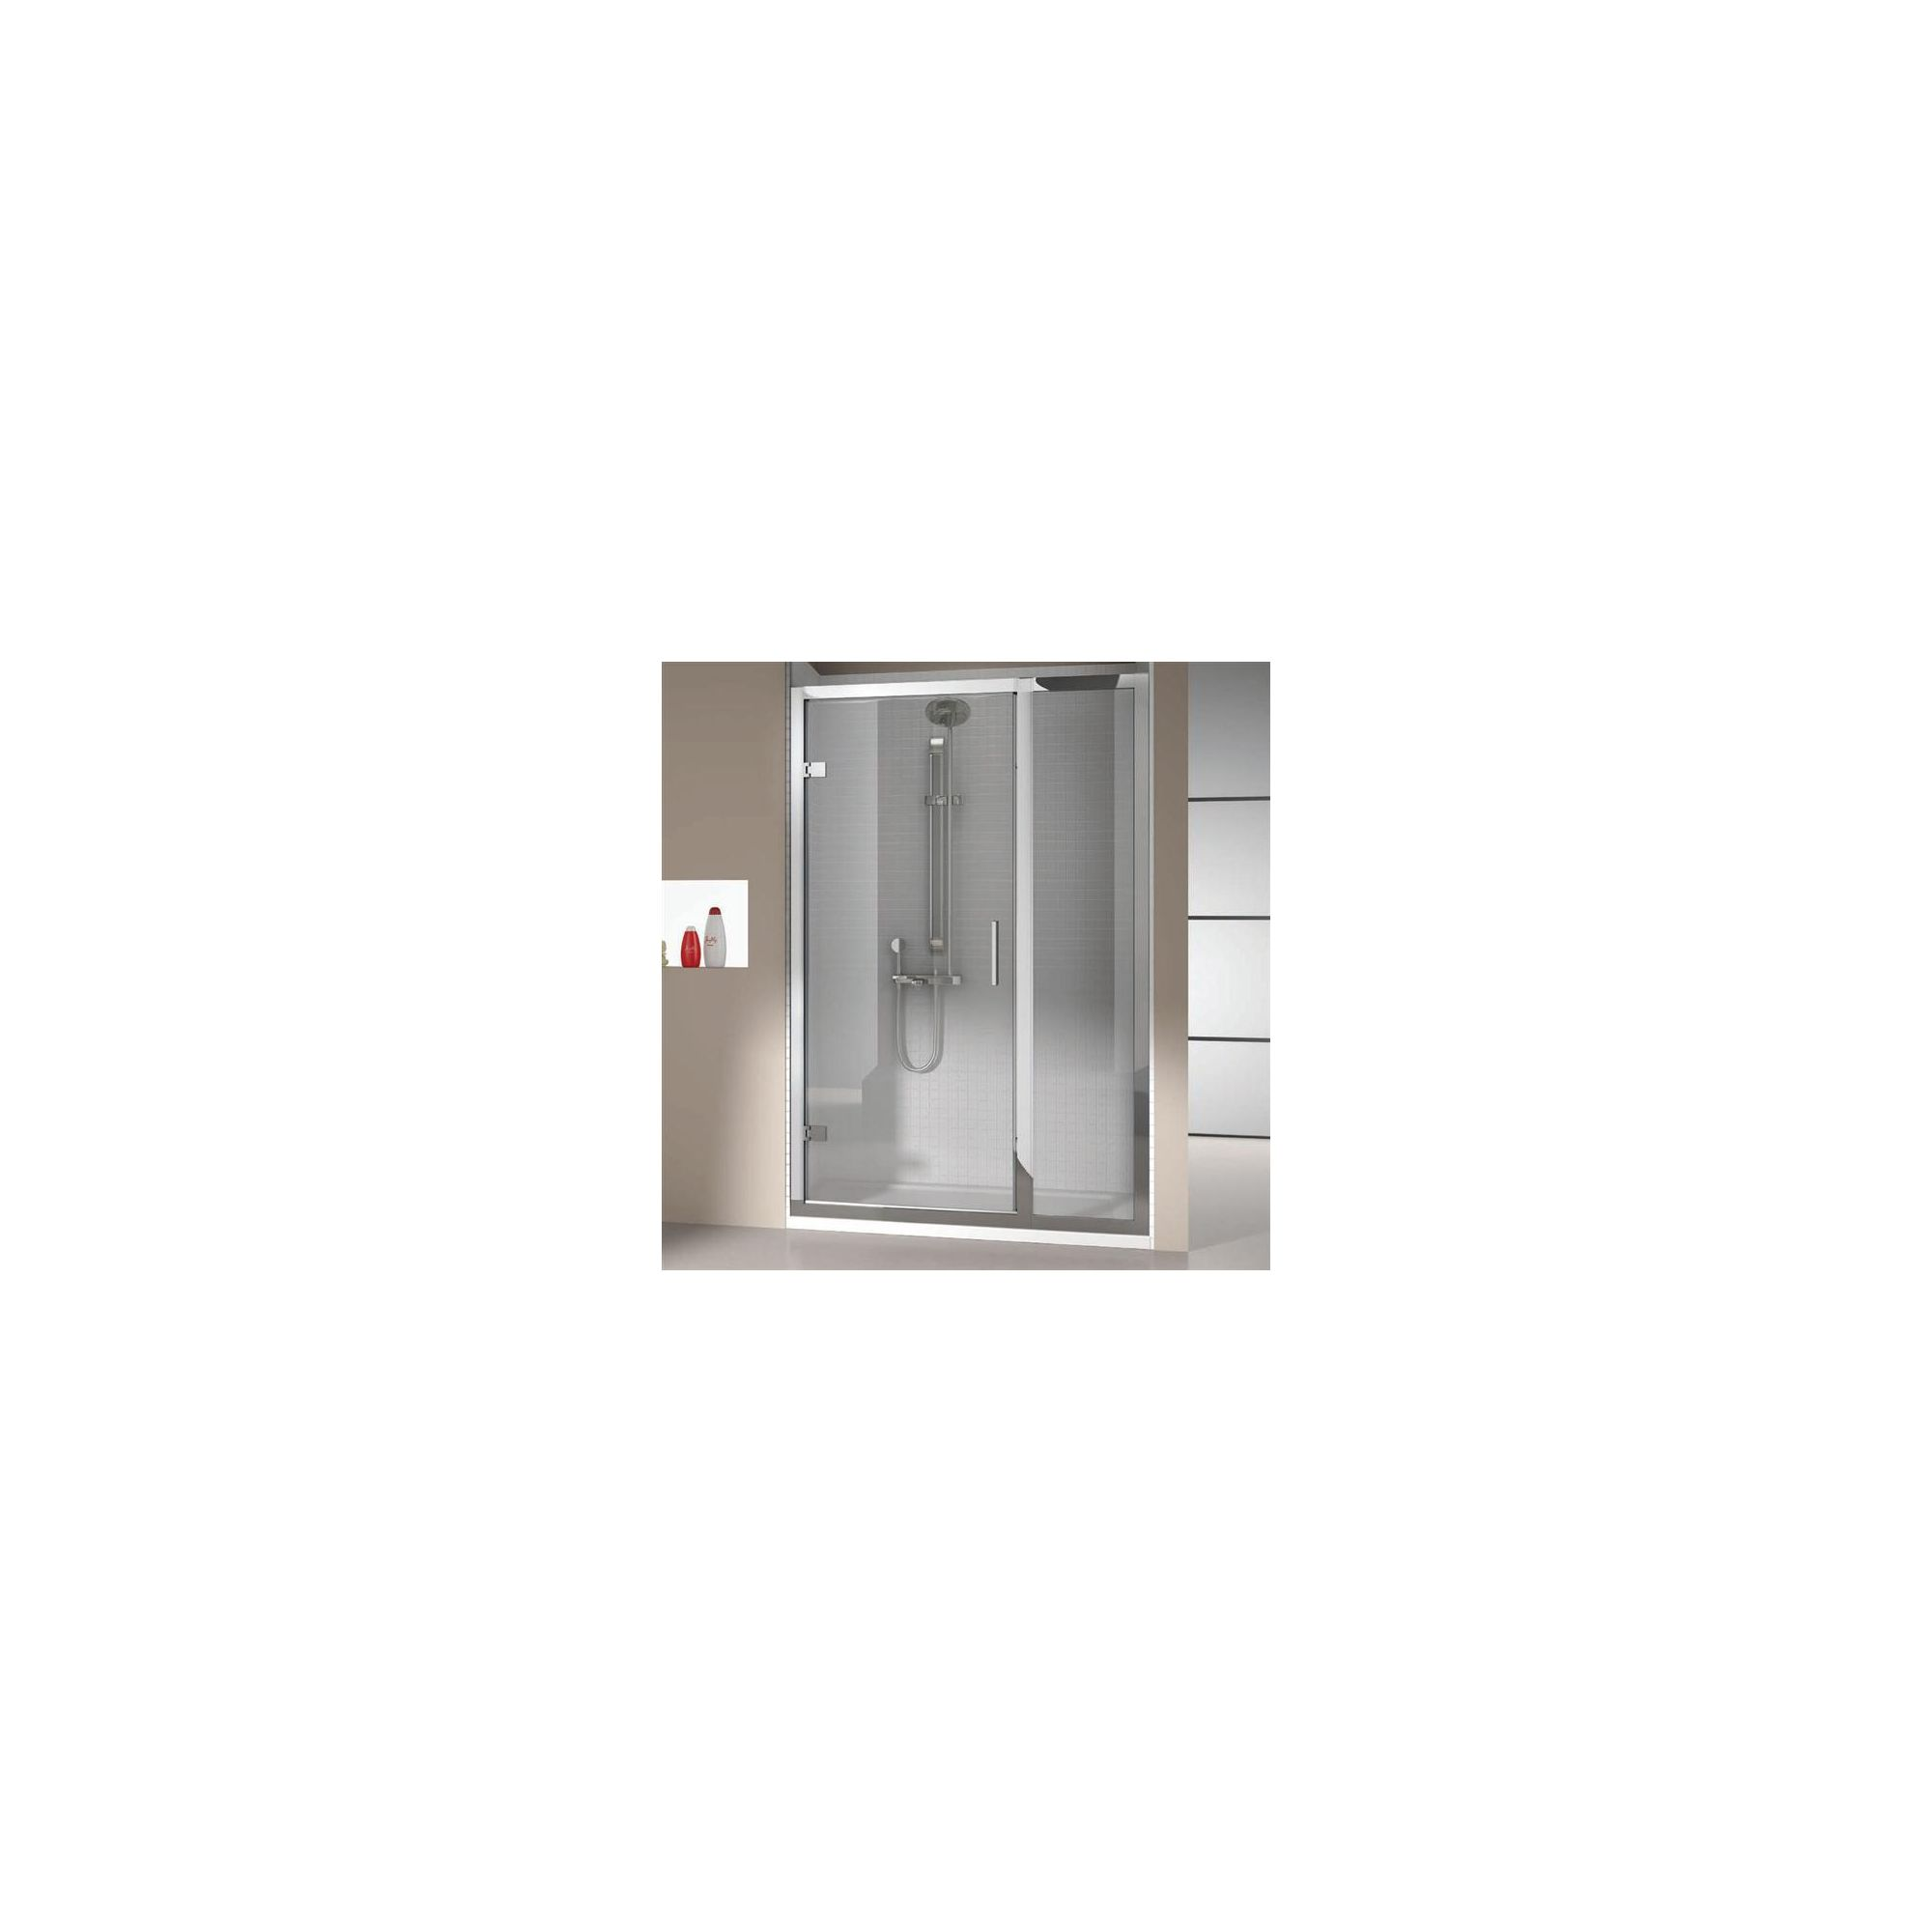 Merlyn Vivid Eight Hinged Shower Door Enclosure with Inline Panel 1200mm x 900mm (including Merlyte Tray) at Tesco Direct